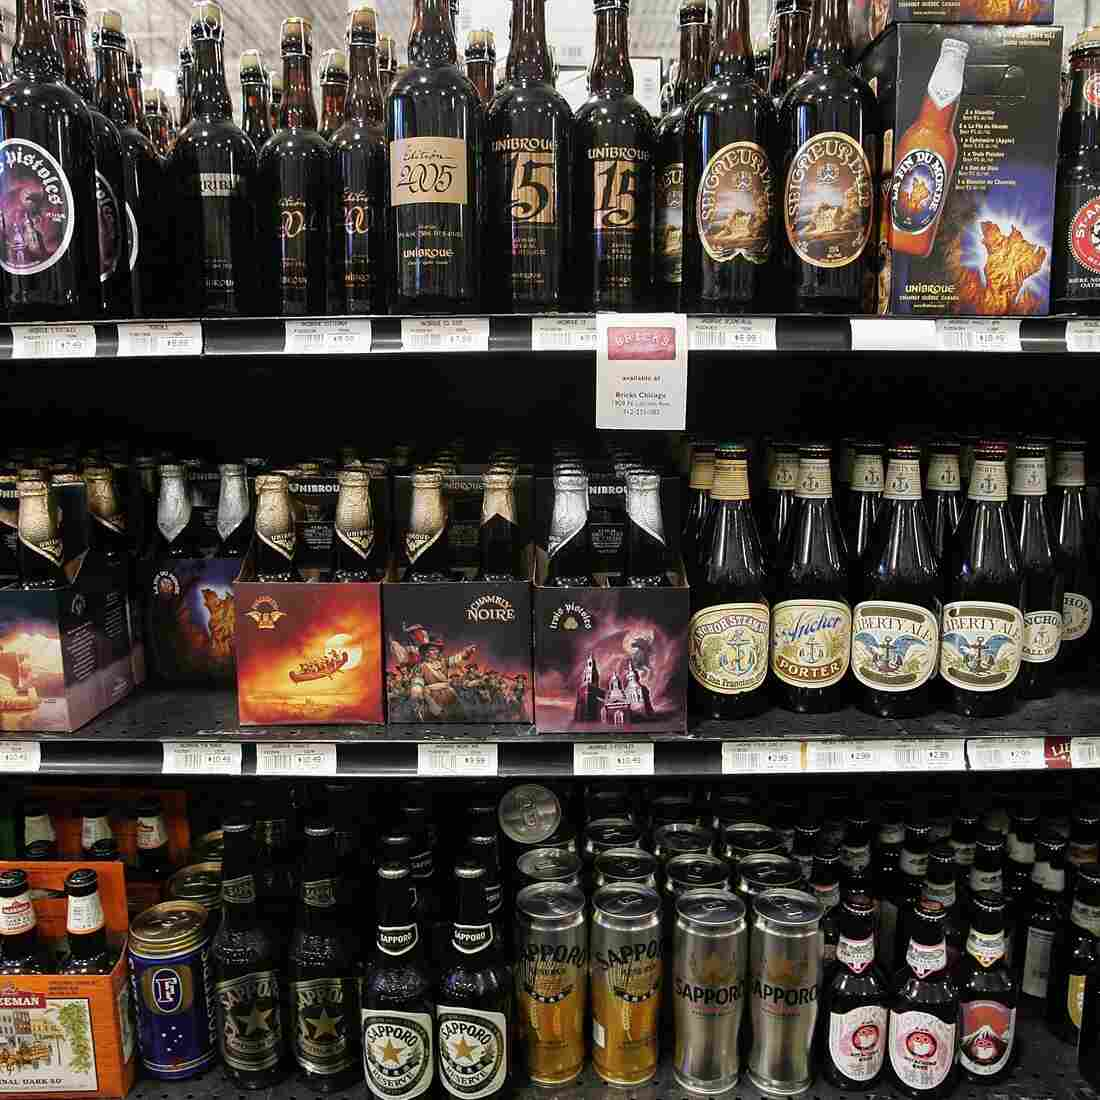 Craft beers for sale in Chicago. Craft beer has about a 6 percent market share in the U.S. beer market, which is dominated by Anheuser-Busch InBev and MillerCoors.